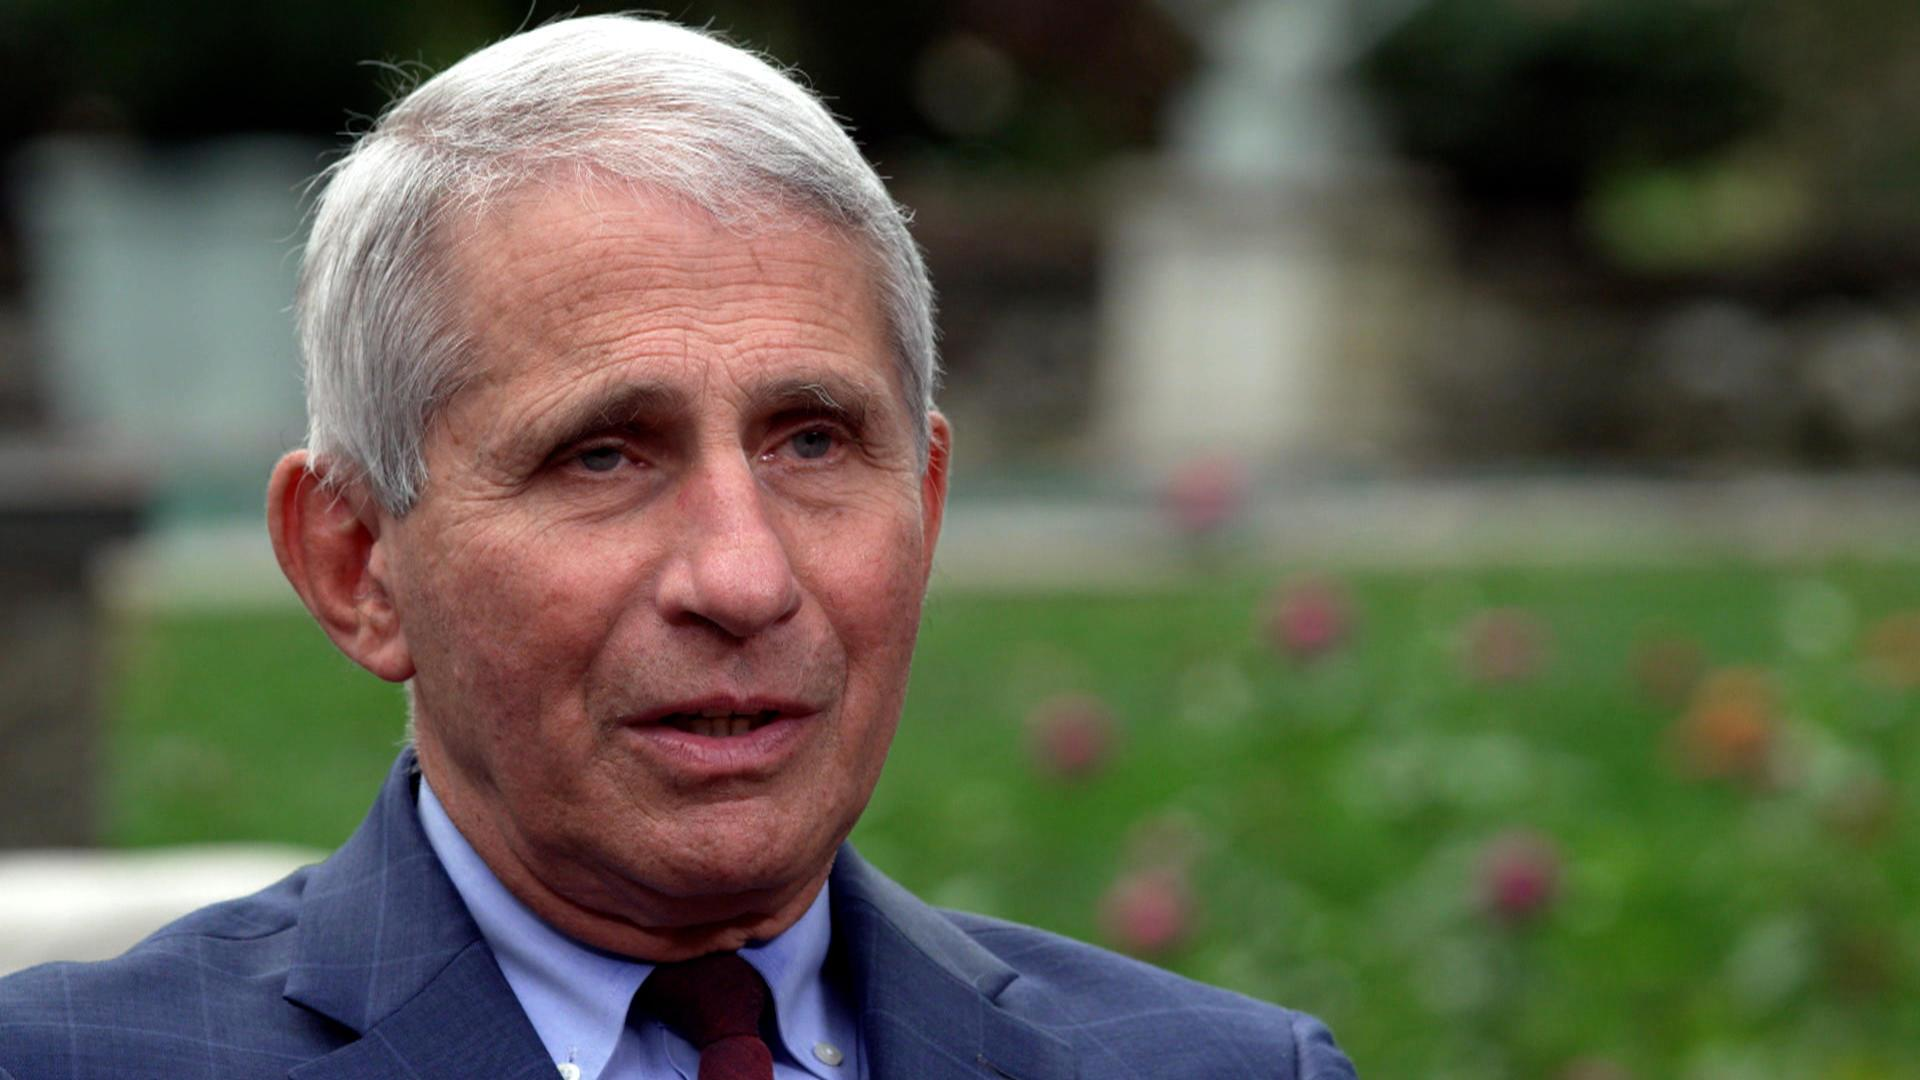 """Fauci: Things would have to be """"really bad"""" before national lockdown"""